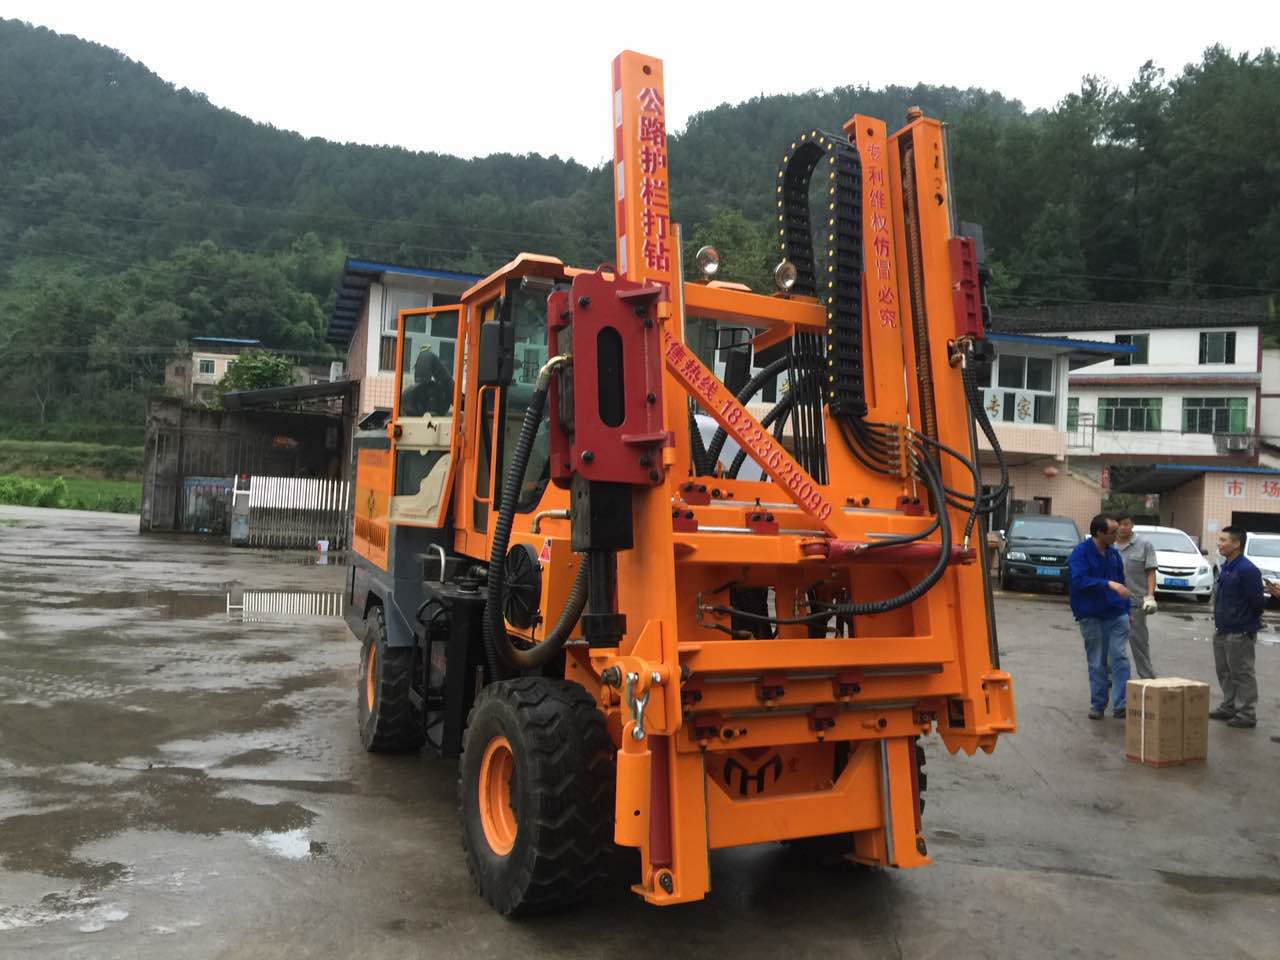 Road guardrail installation machine, drilling / pile driver